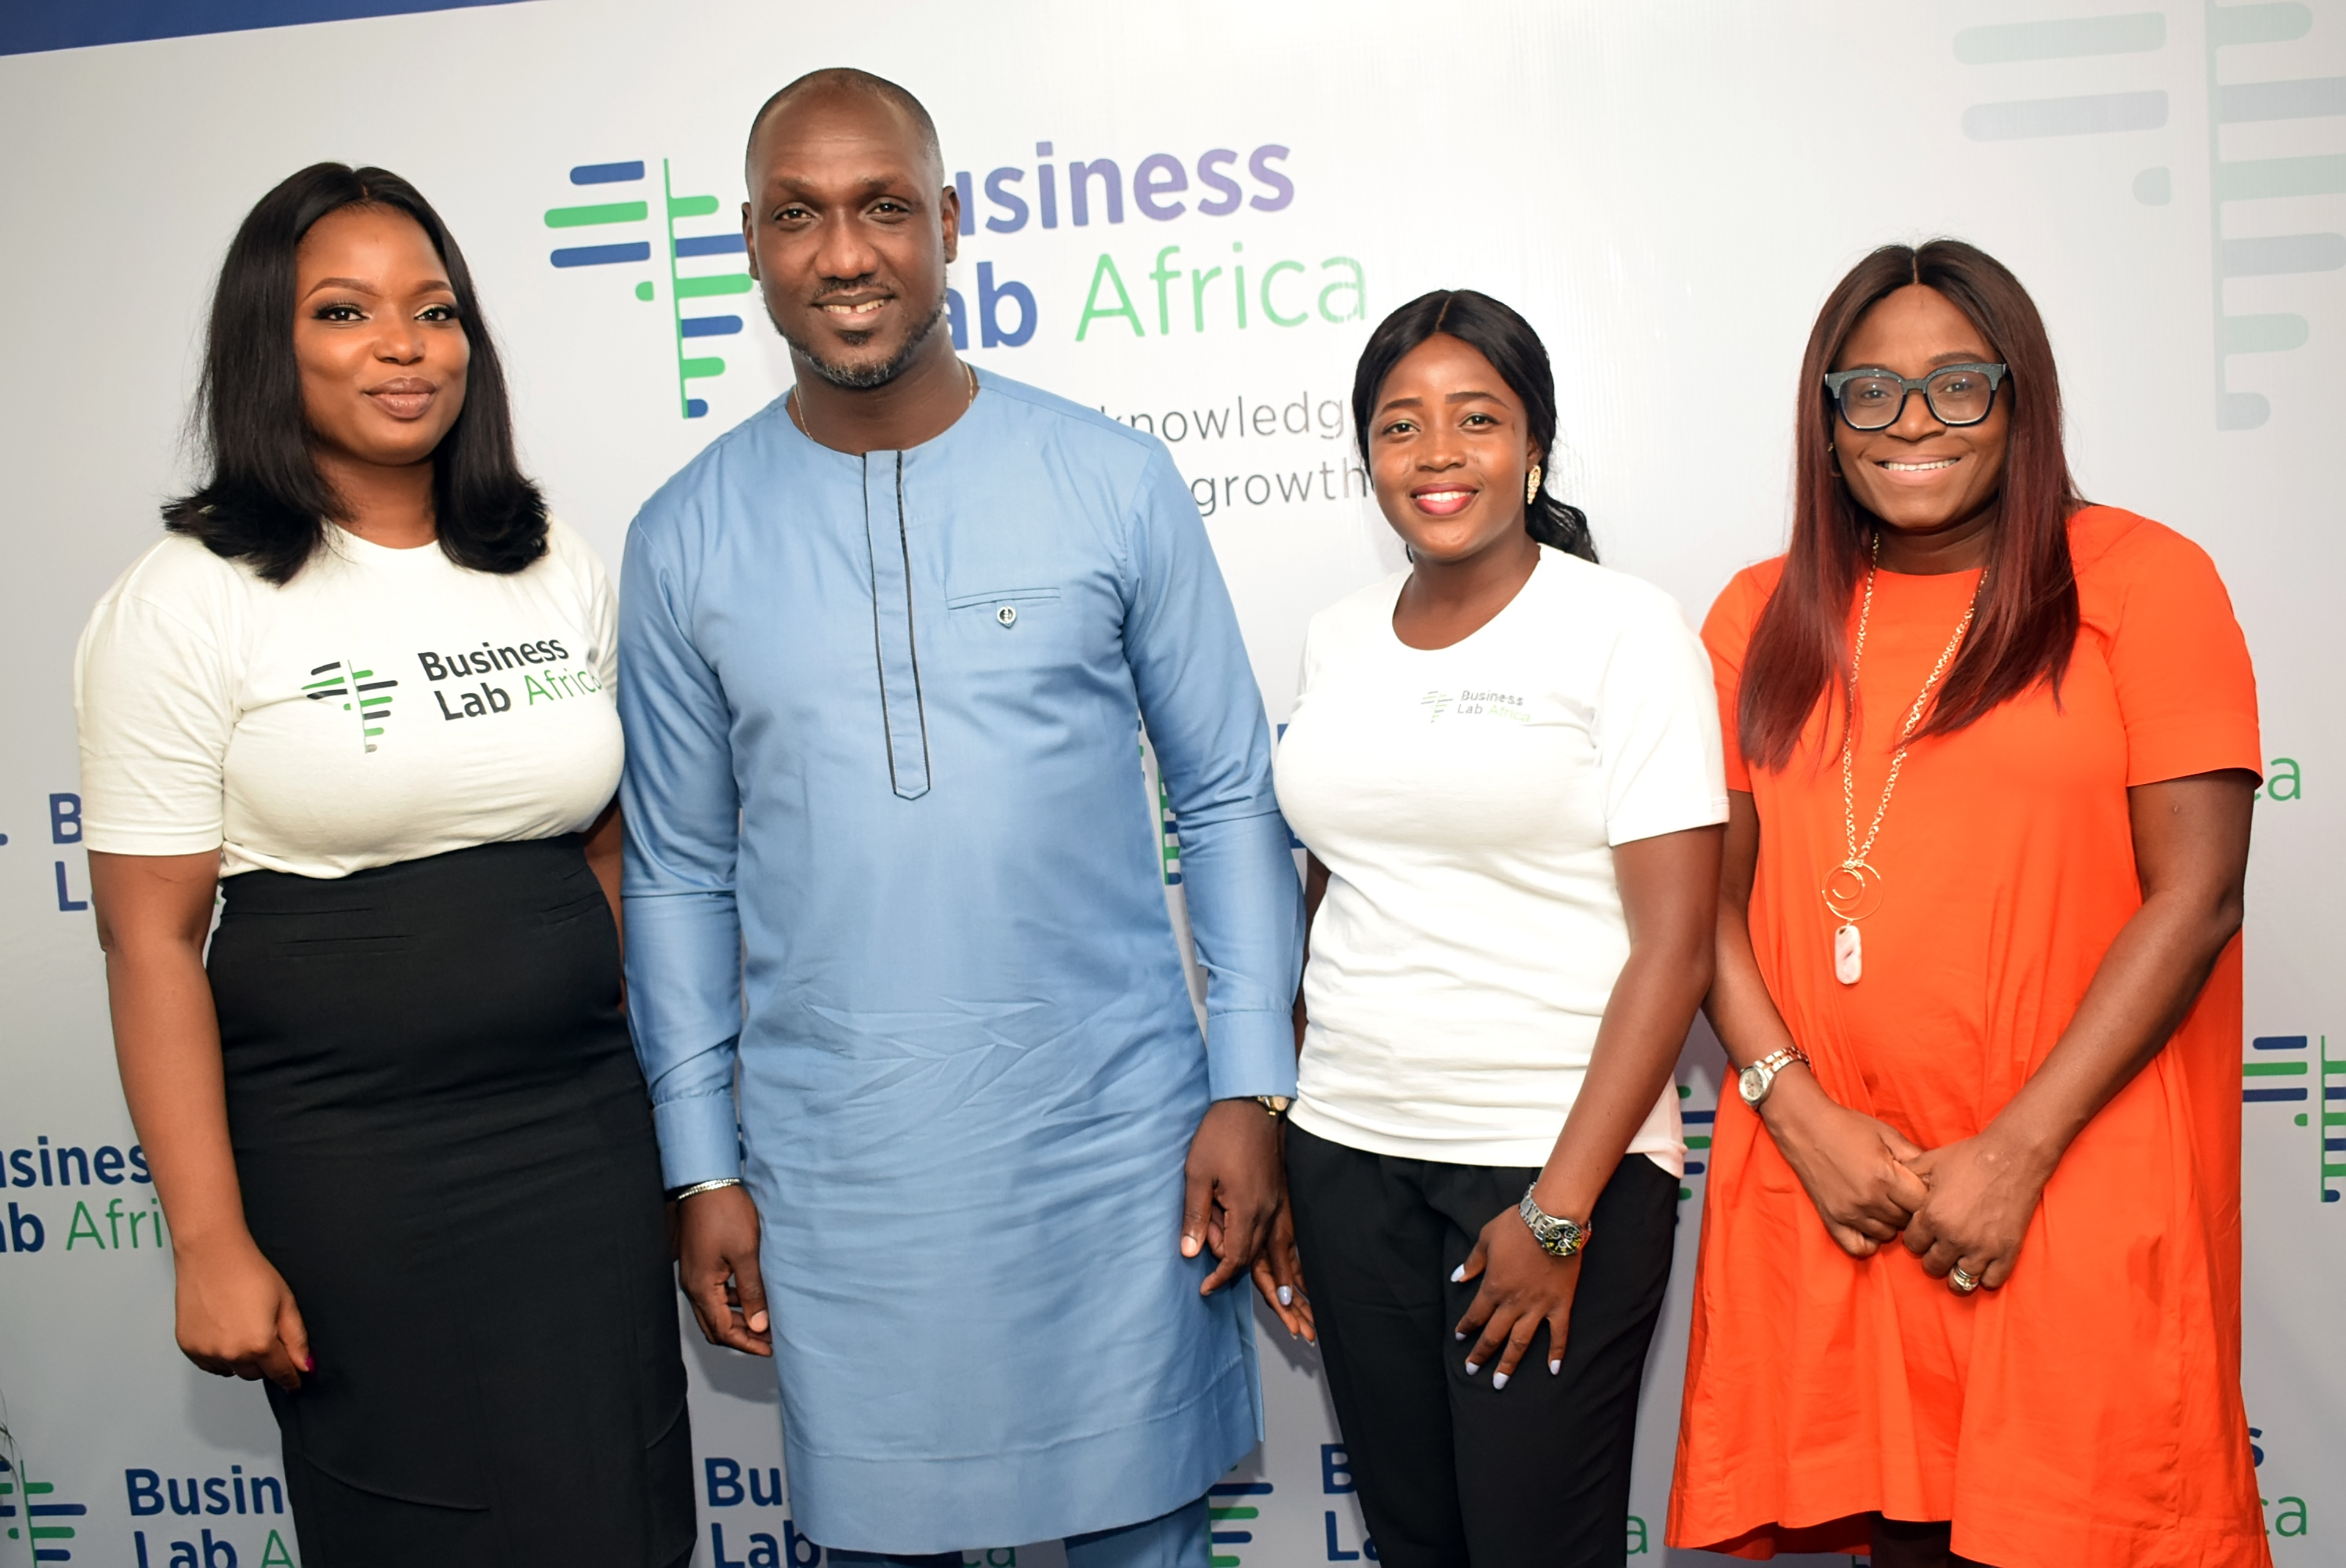 Online business school, Business Lab Africa, debuts in Nigeria